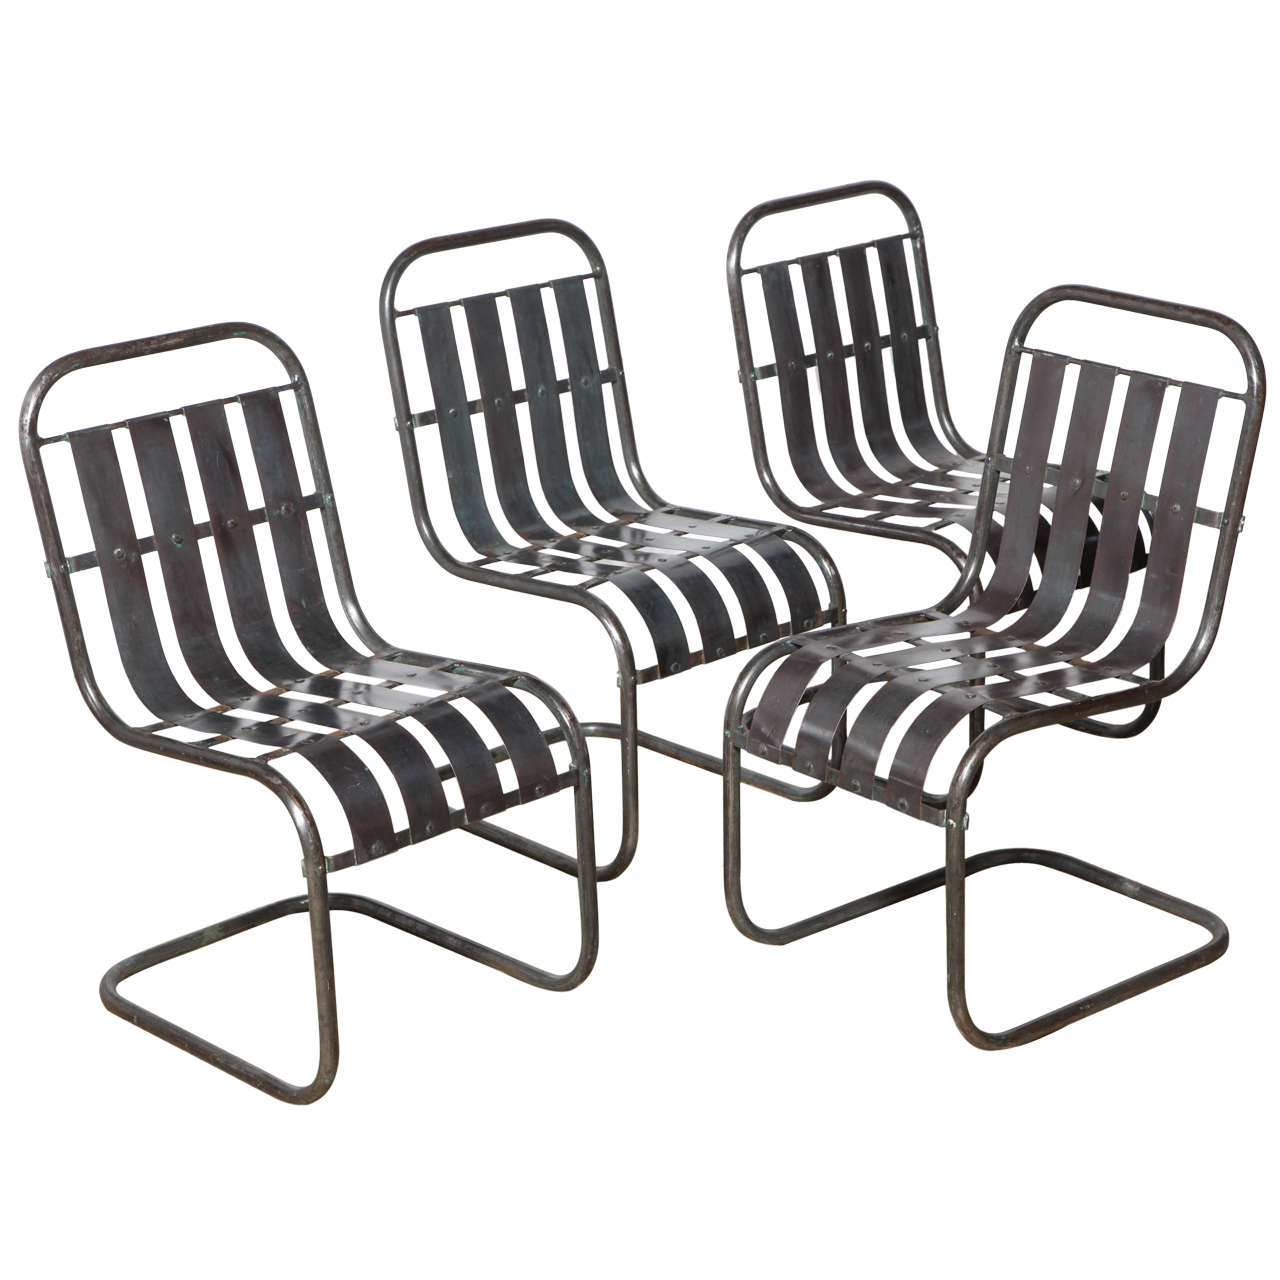 Superb Set Of Four Industrial Steel Spring Rocker Side Chairs, Circa 1930 For Sale